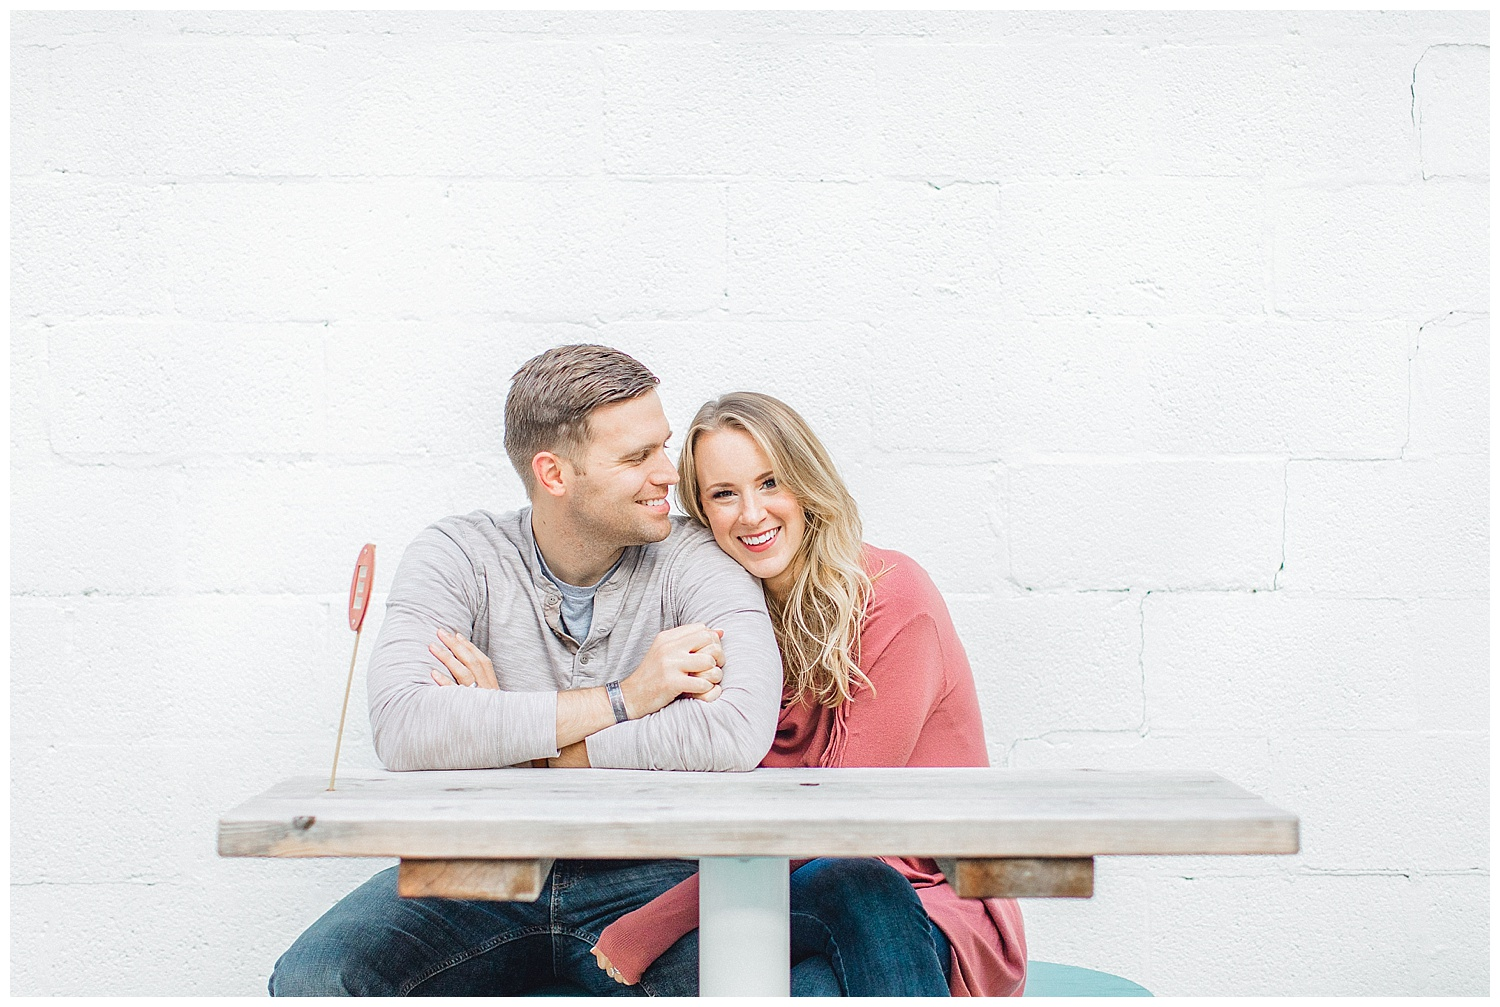 ERC_0790_Downtown Nashville Engagement Session at Barista Parlor   Emma Rose Company Wedding Photographer   Outfit Inspiration for Engagement Session   Kindred Light and Airy Photographer.jpg